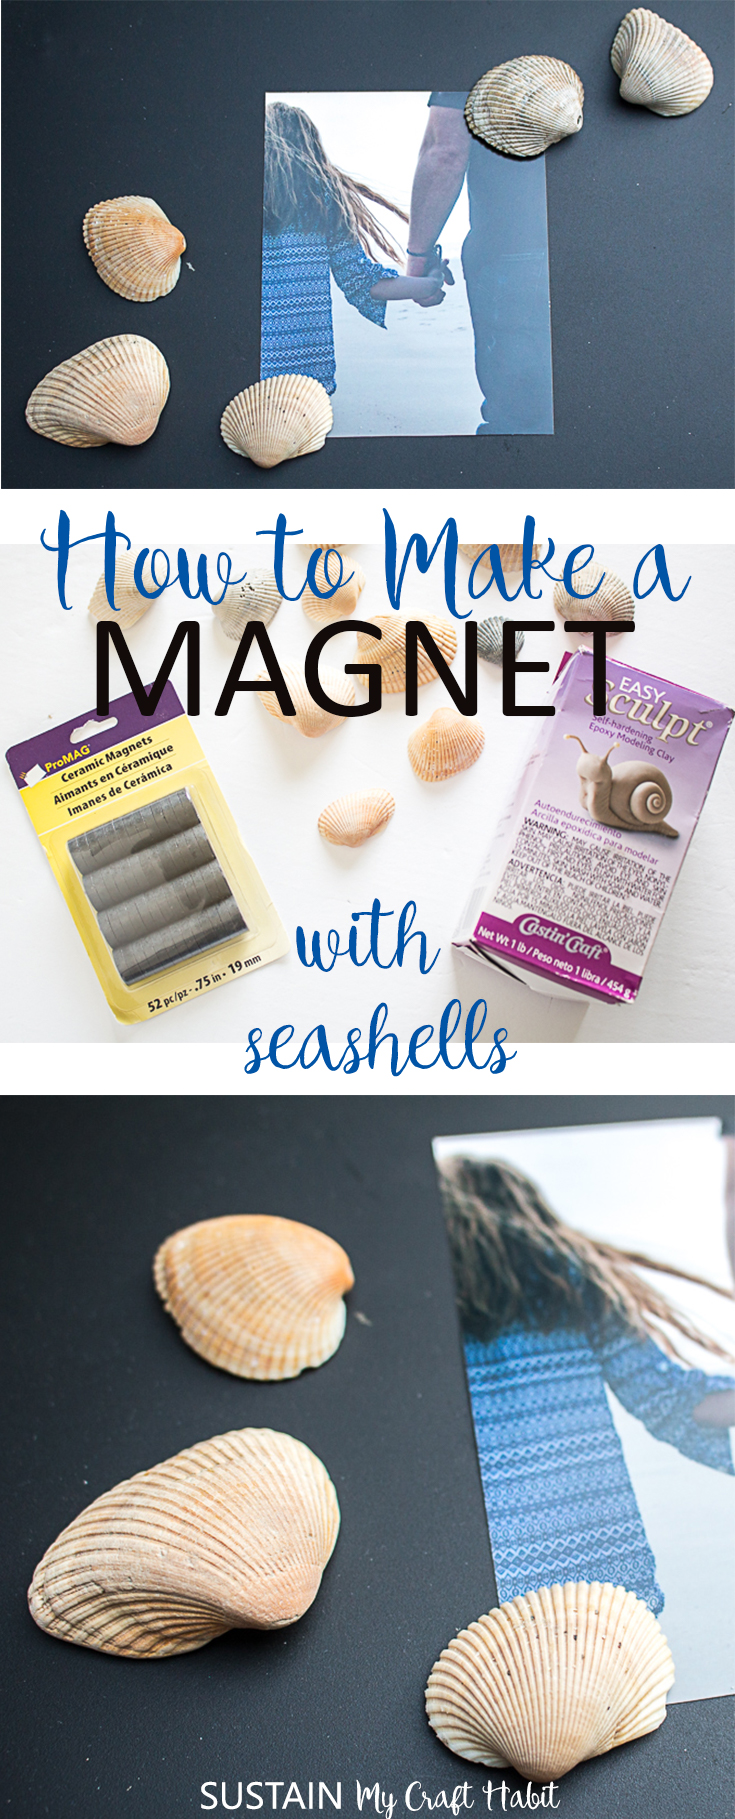 how to make a magnet with sea shells